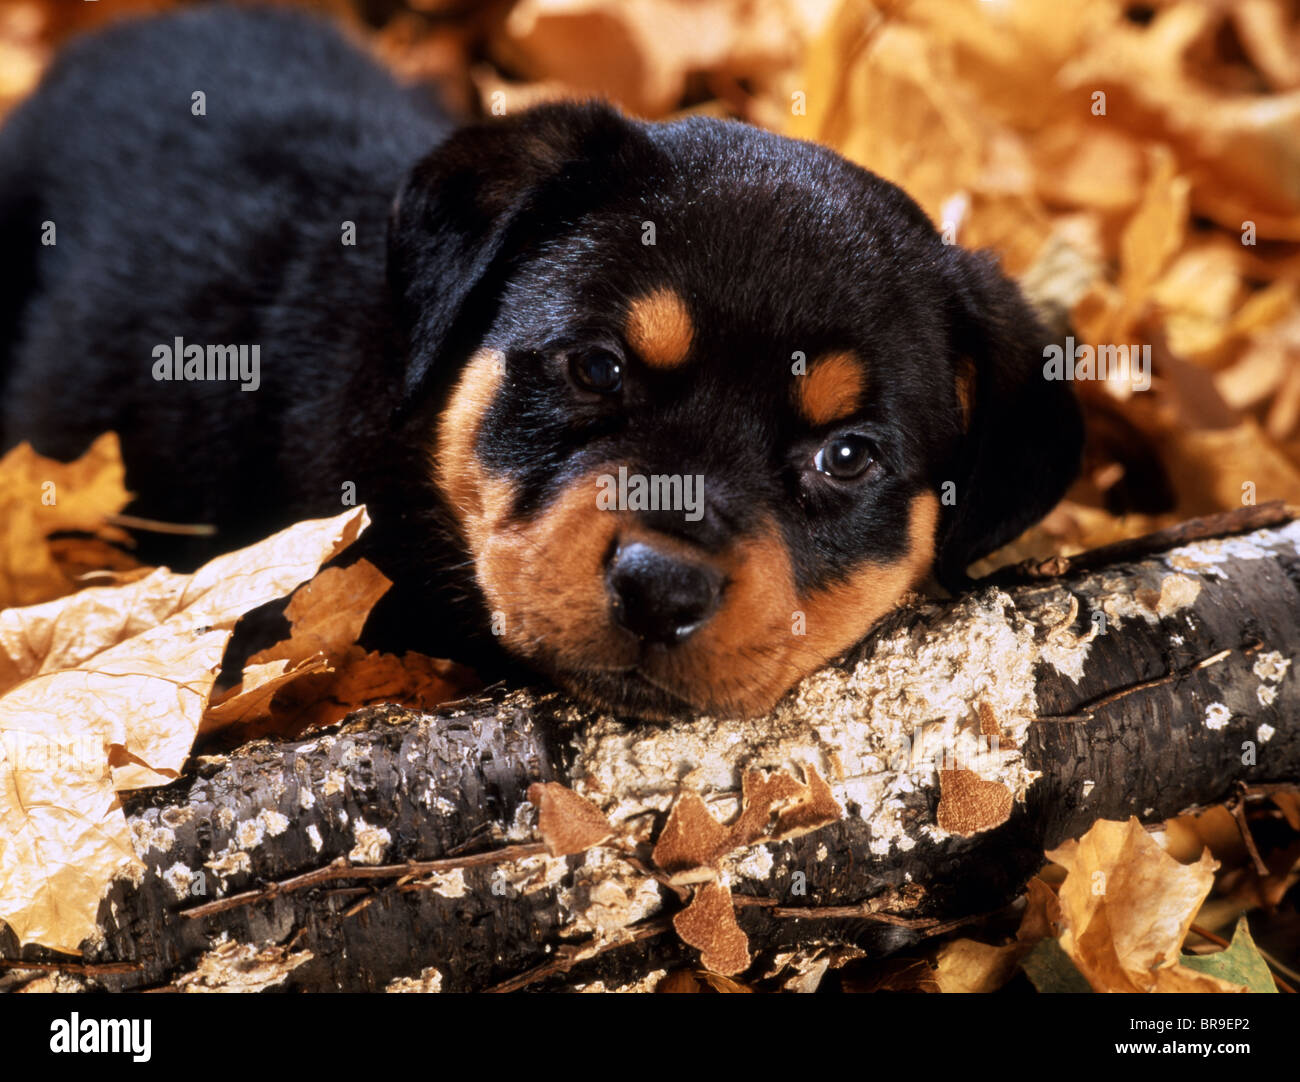 ROTTWEILER PUPPY LYING IN AUTUMN LEAVES - Stock Image